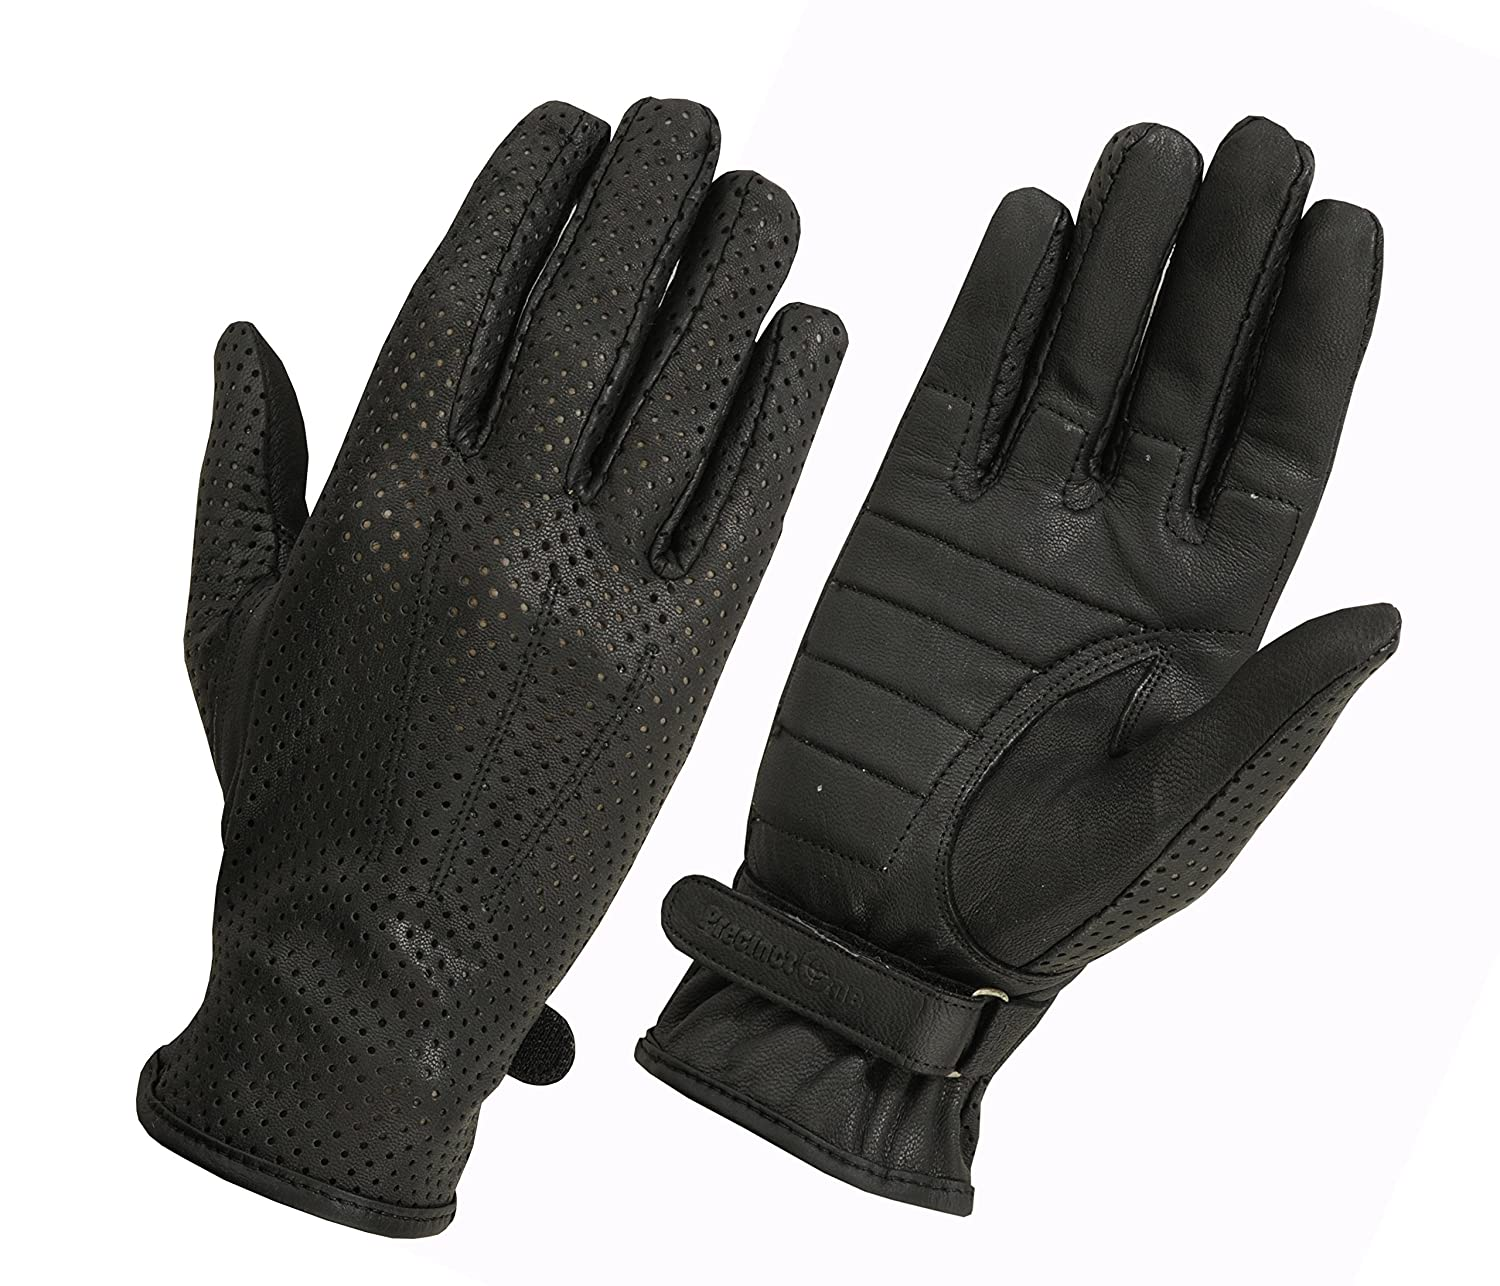 Ladies Weatherlite Water Resistance Leather Driving, Police, and Motorcycle Glove